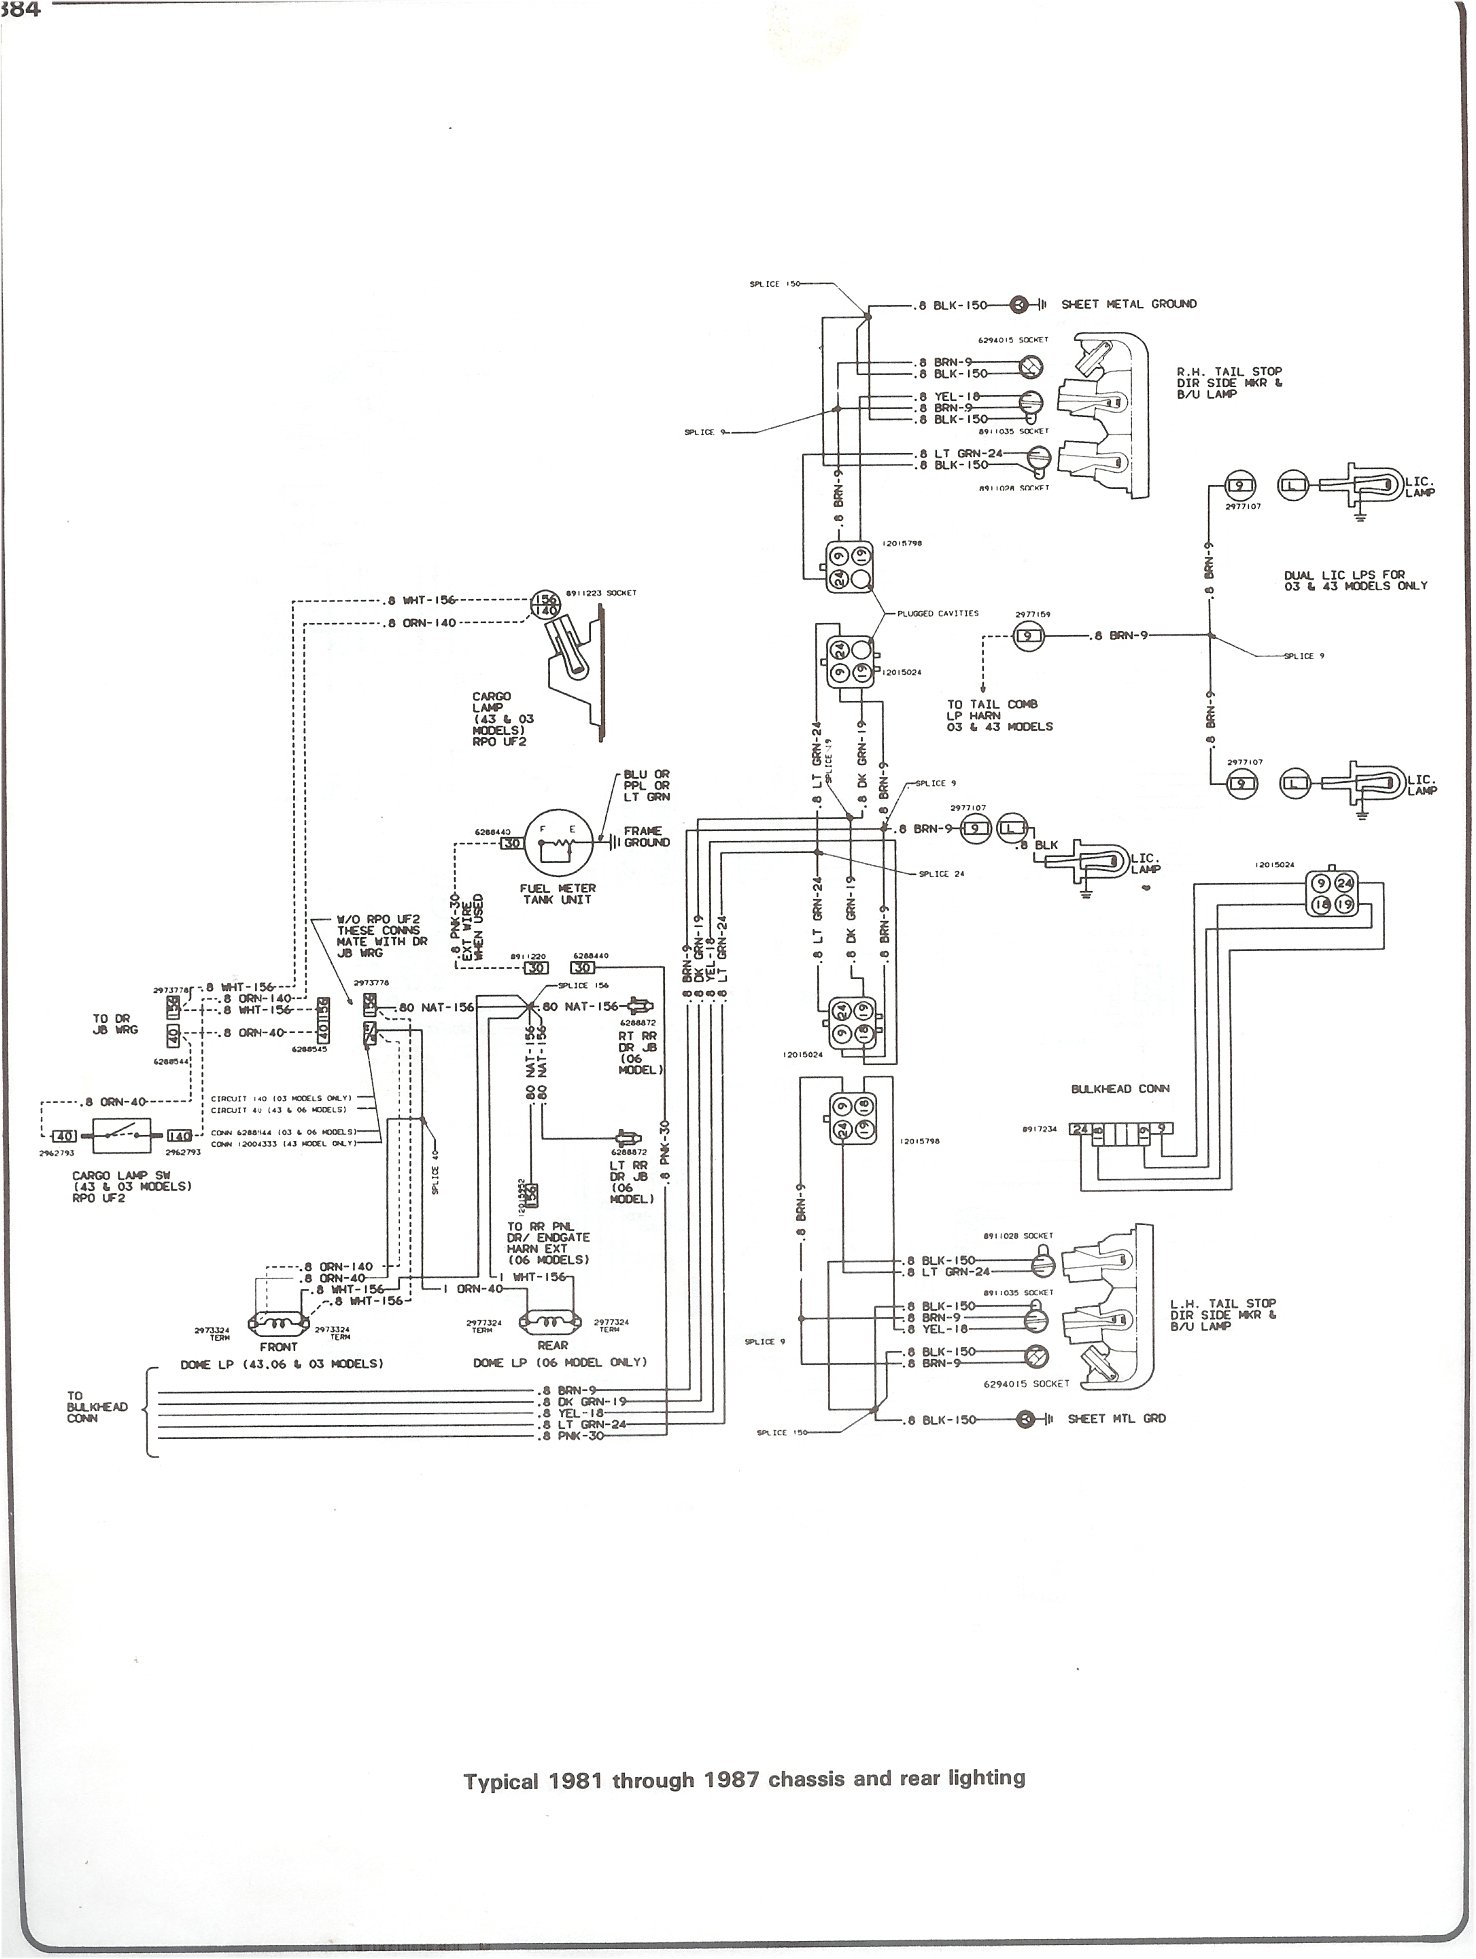 81 87_chass_rr_light complete 73 87 wiring diagrams 1985 chevy c30 wiring diagram at gsmportal.co